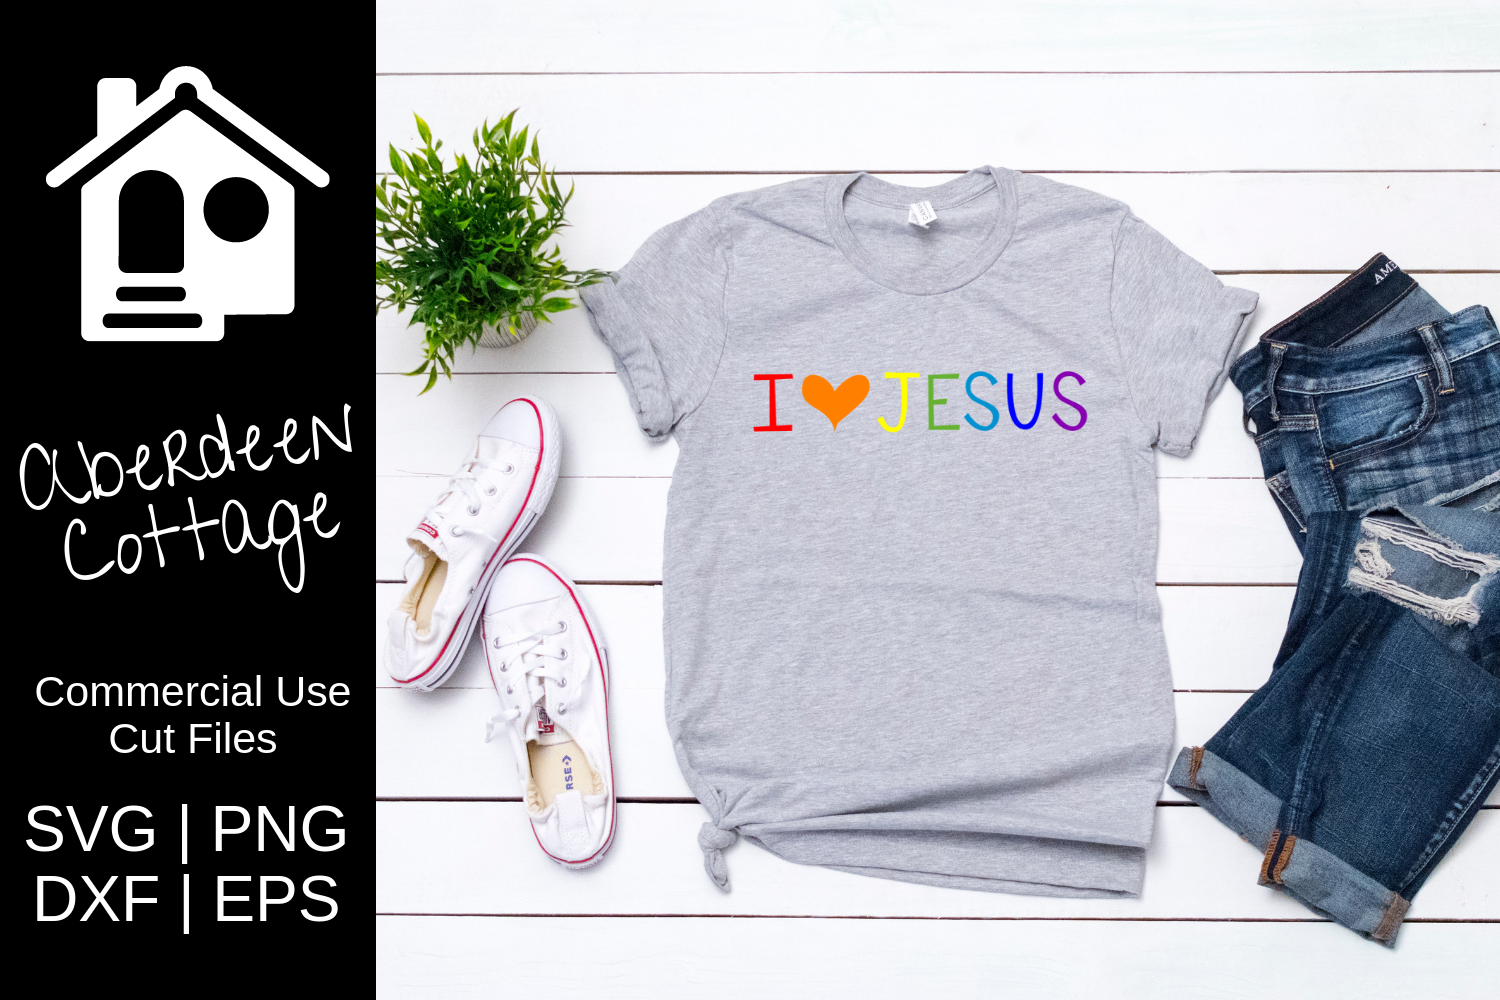 Download Free I Love Jesus Christian Svg Graphic By Aberdeencottage Creative for Cricut Explore, Silhouette and other cutting machines.